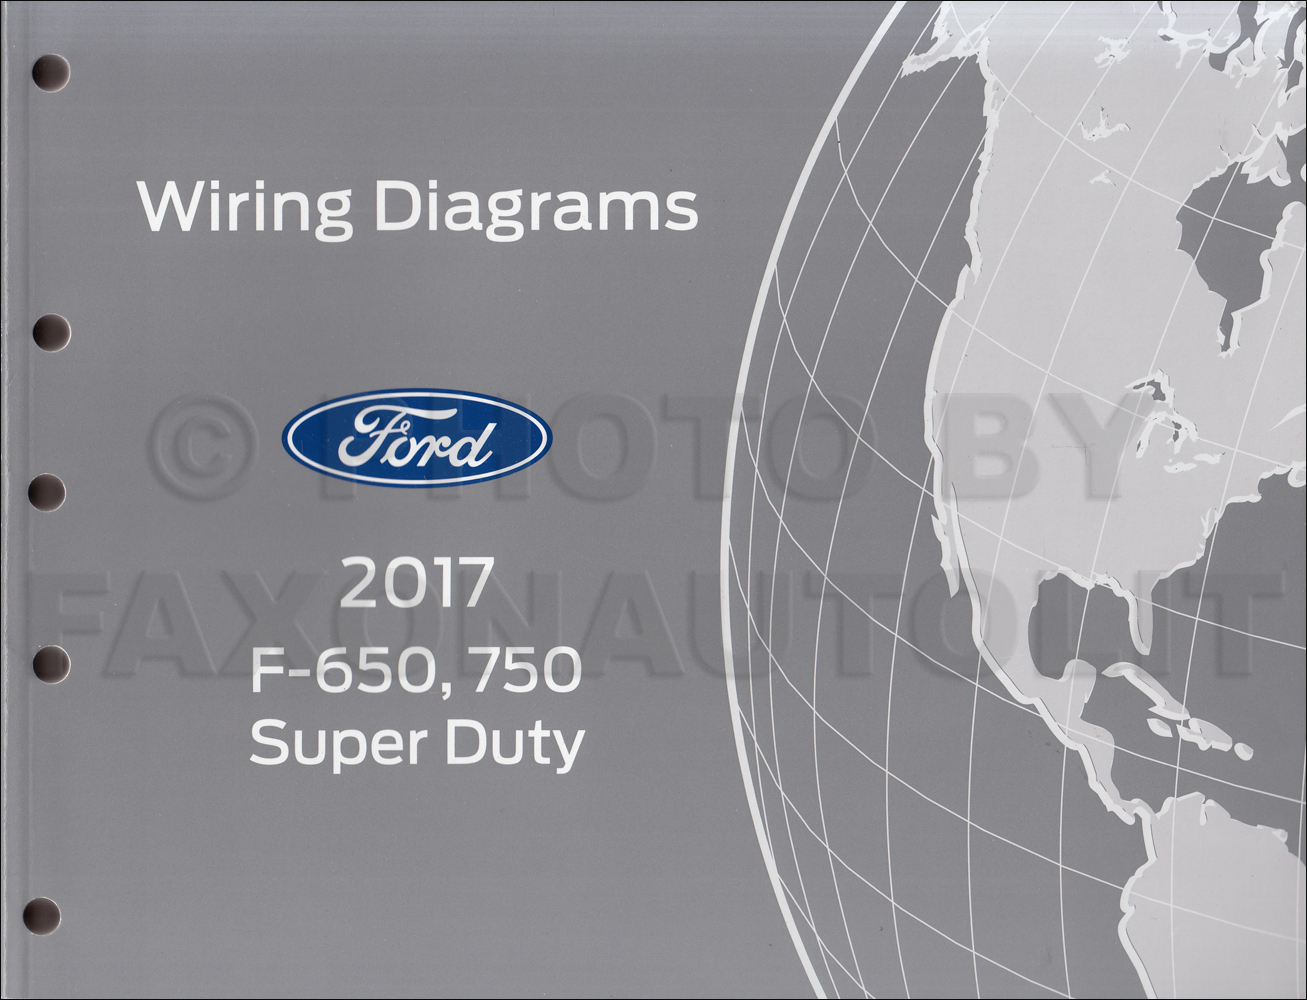 2017FordF650750SuperDutyOWD 2017 ford f 650 and f 750 super duty truck wiring diagram manual f750 wiring diagram at panicattacktreatment.co